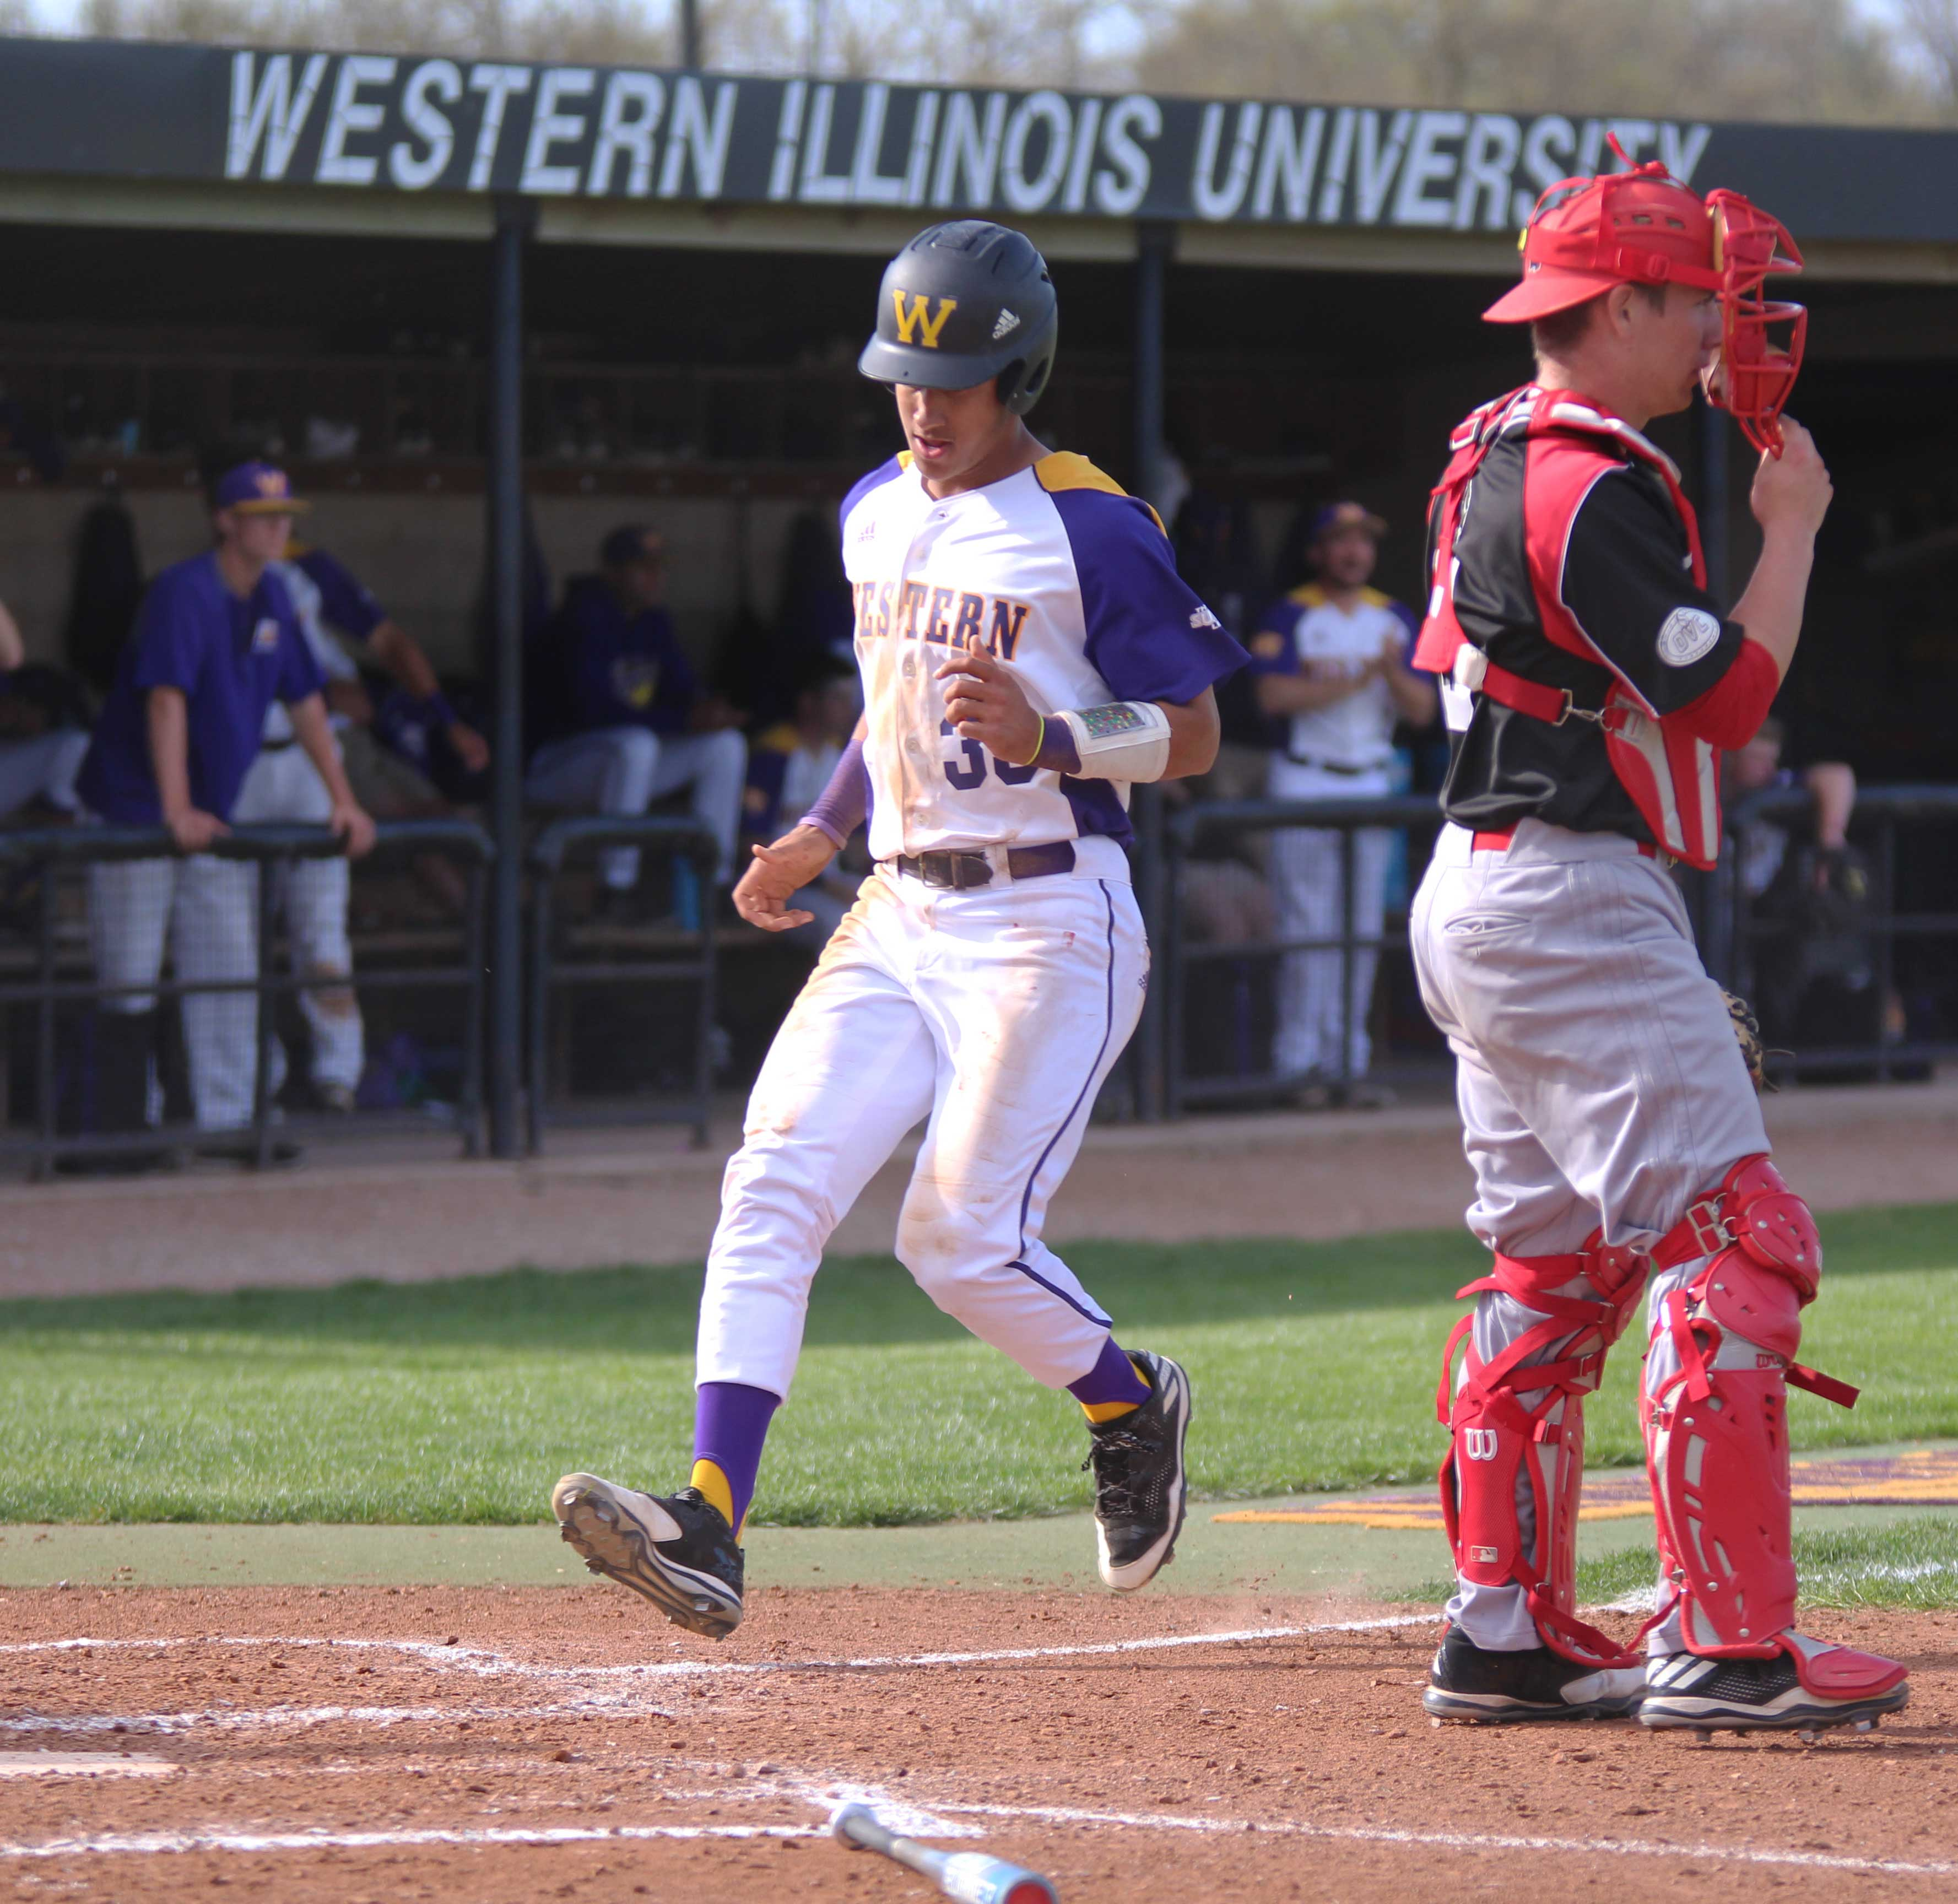 Sophomore Deion Thompson crosses home plate at Alfred D. Boyer Stadium in Macomb